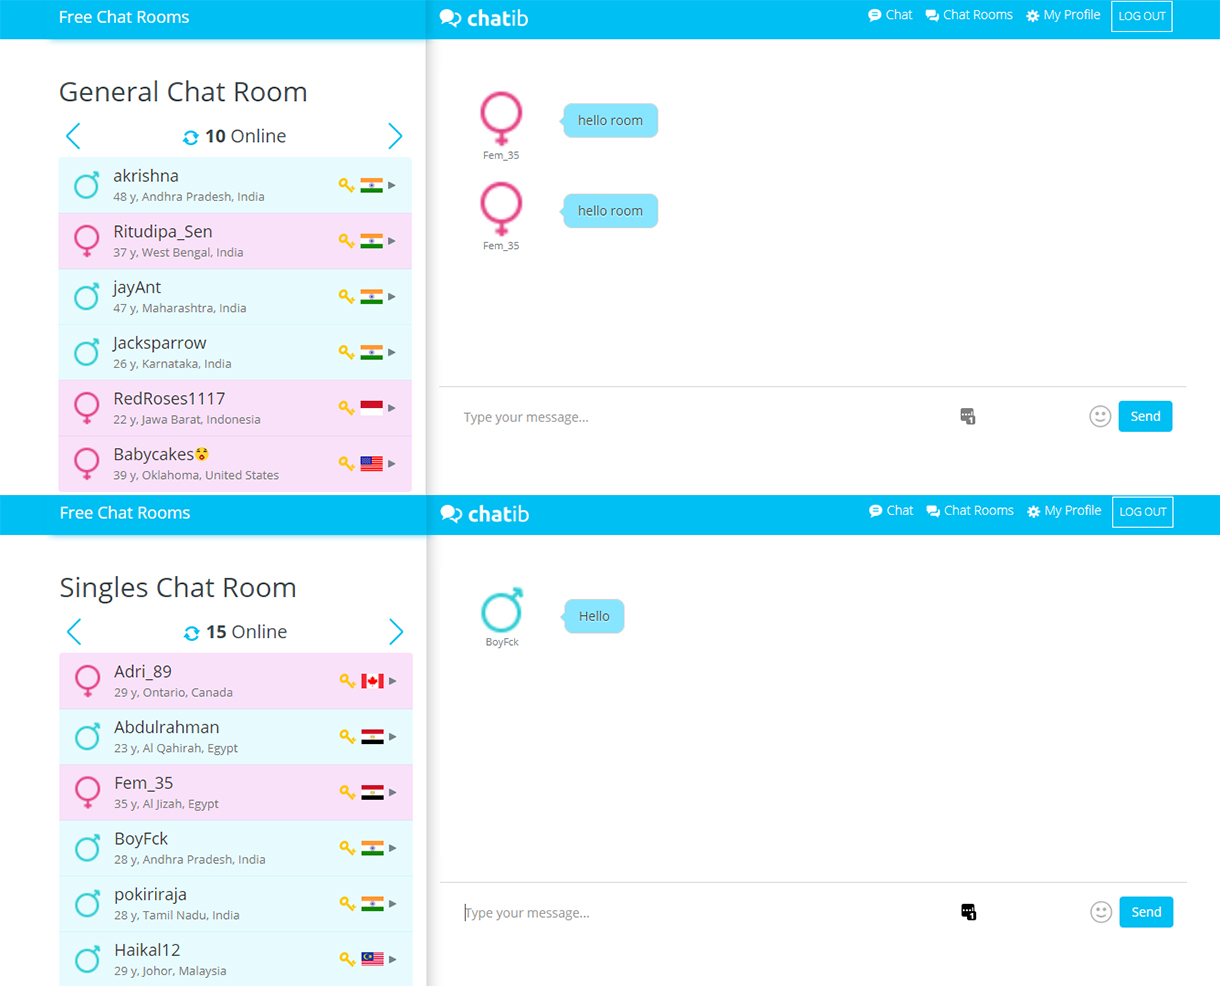 Chatib Chat Rooms